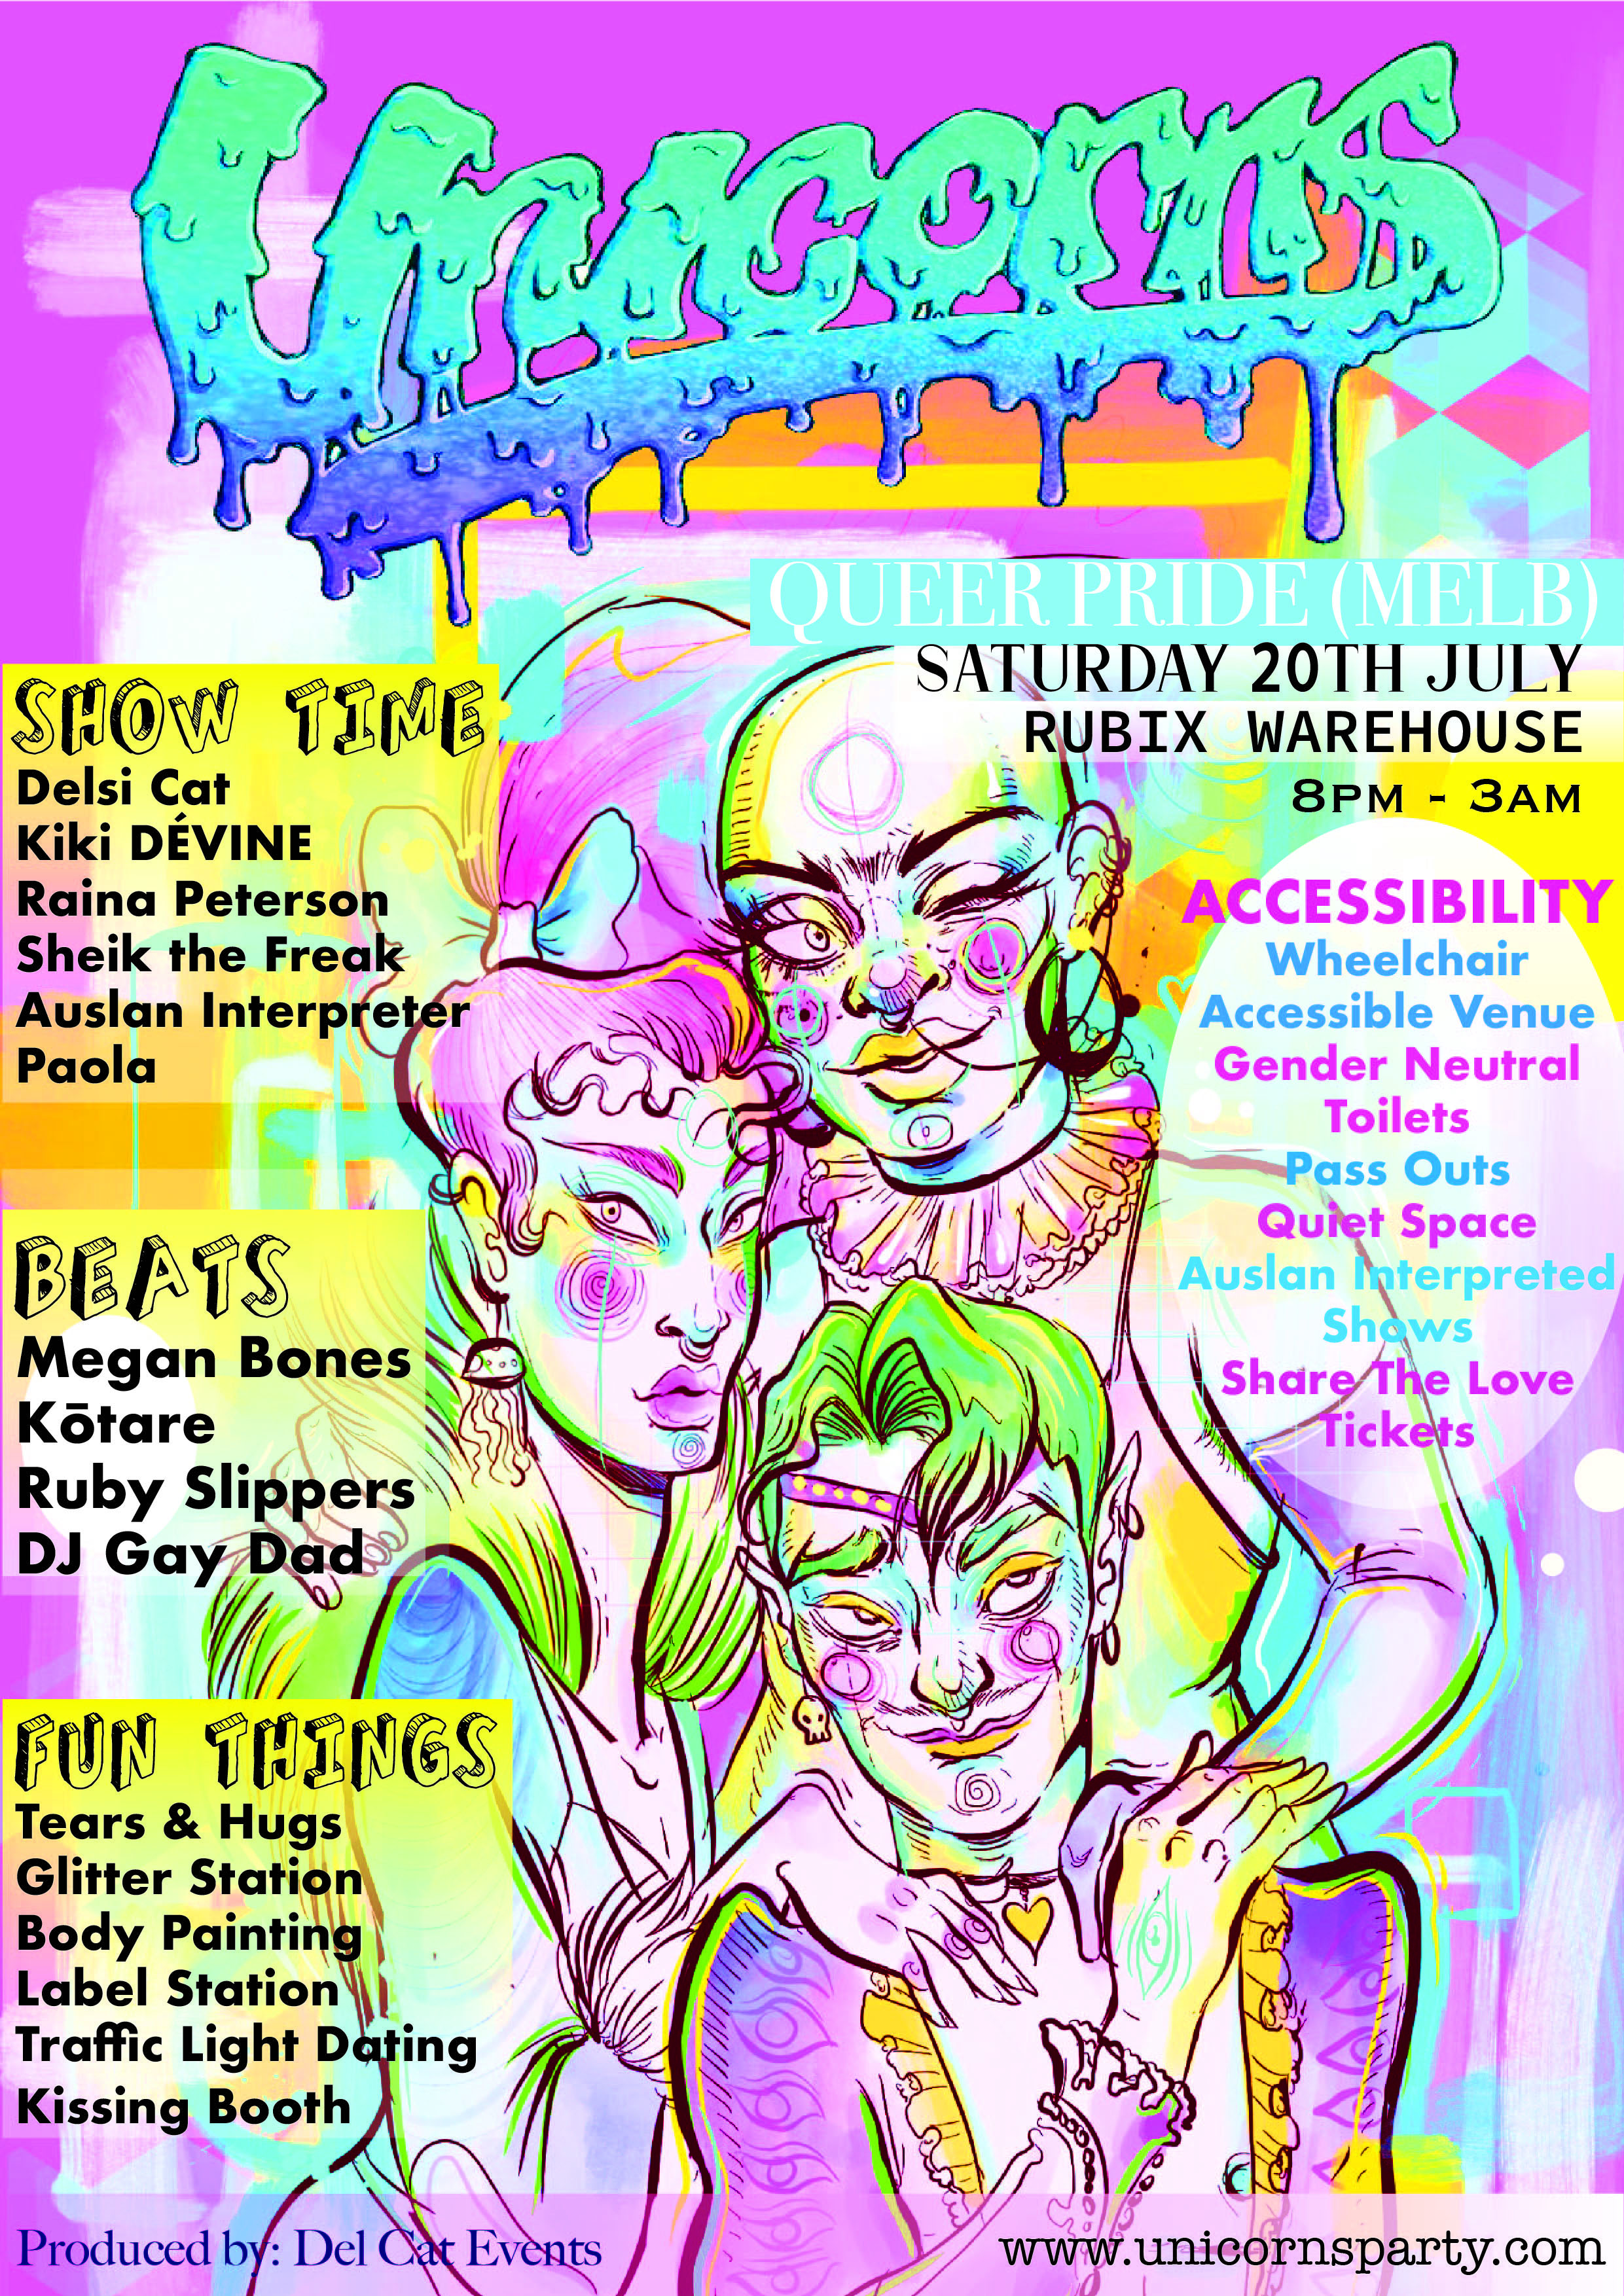 Unicorns - Queer Pride (MELB) - Saturday 20th July8pm - 3amRubix WarehouseSOLD OUT